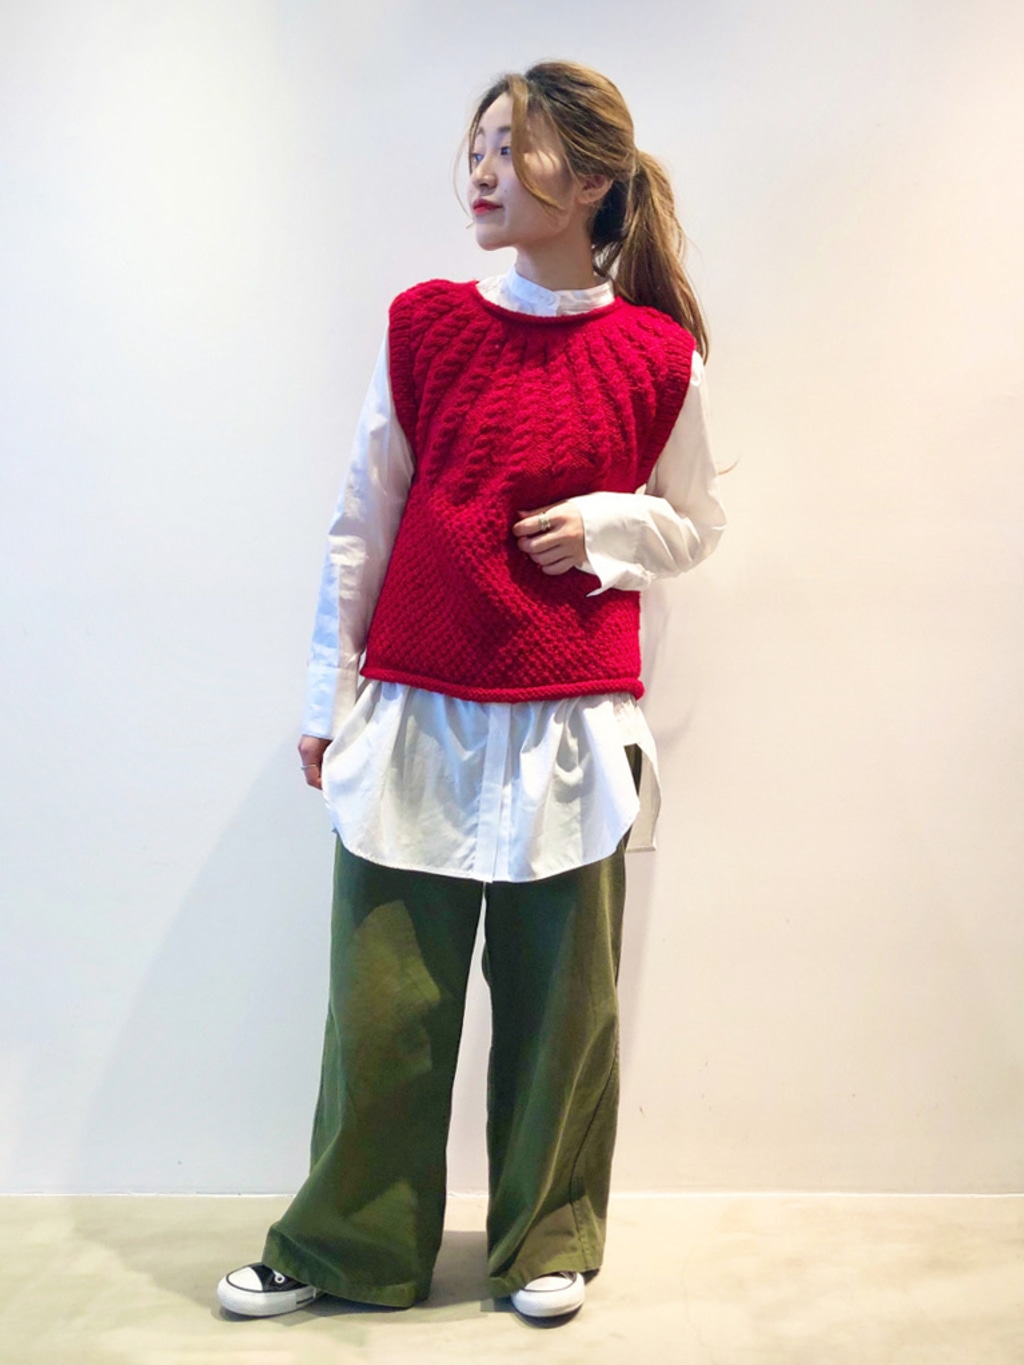 Dot and Stripes CHILD WOMAN ラフォーレ原宿 身長:153cm 2020.10.21